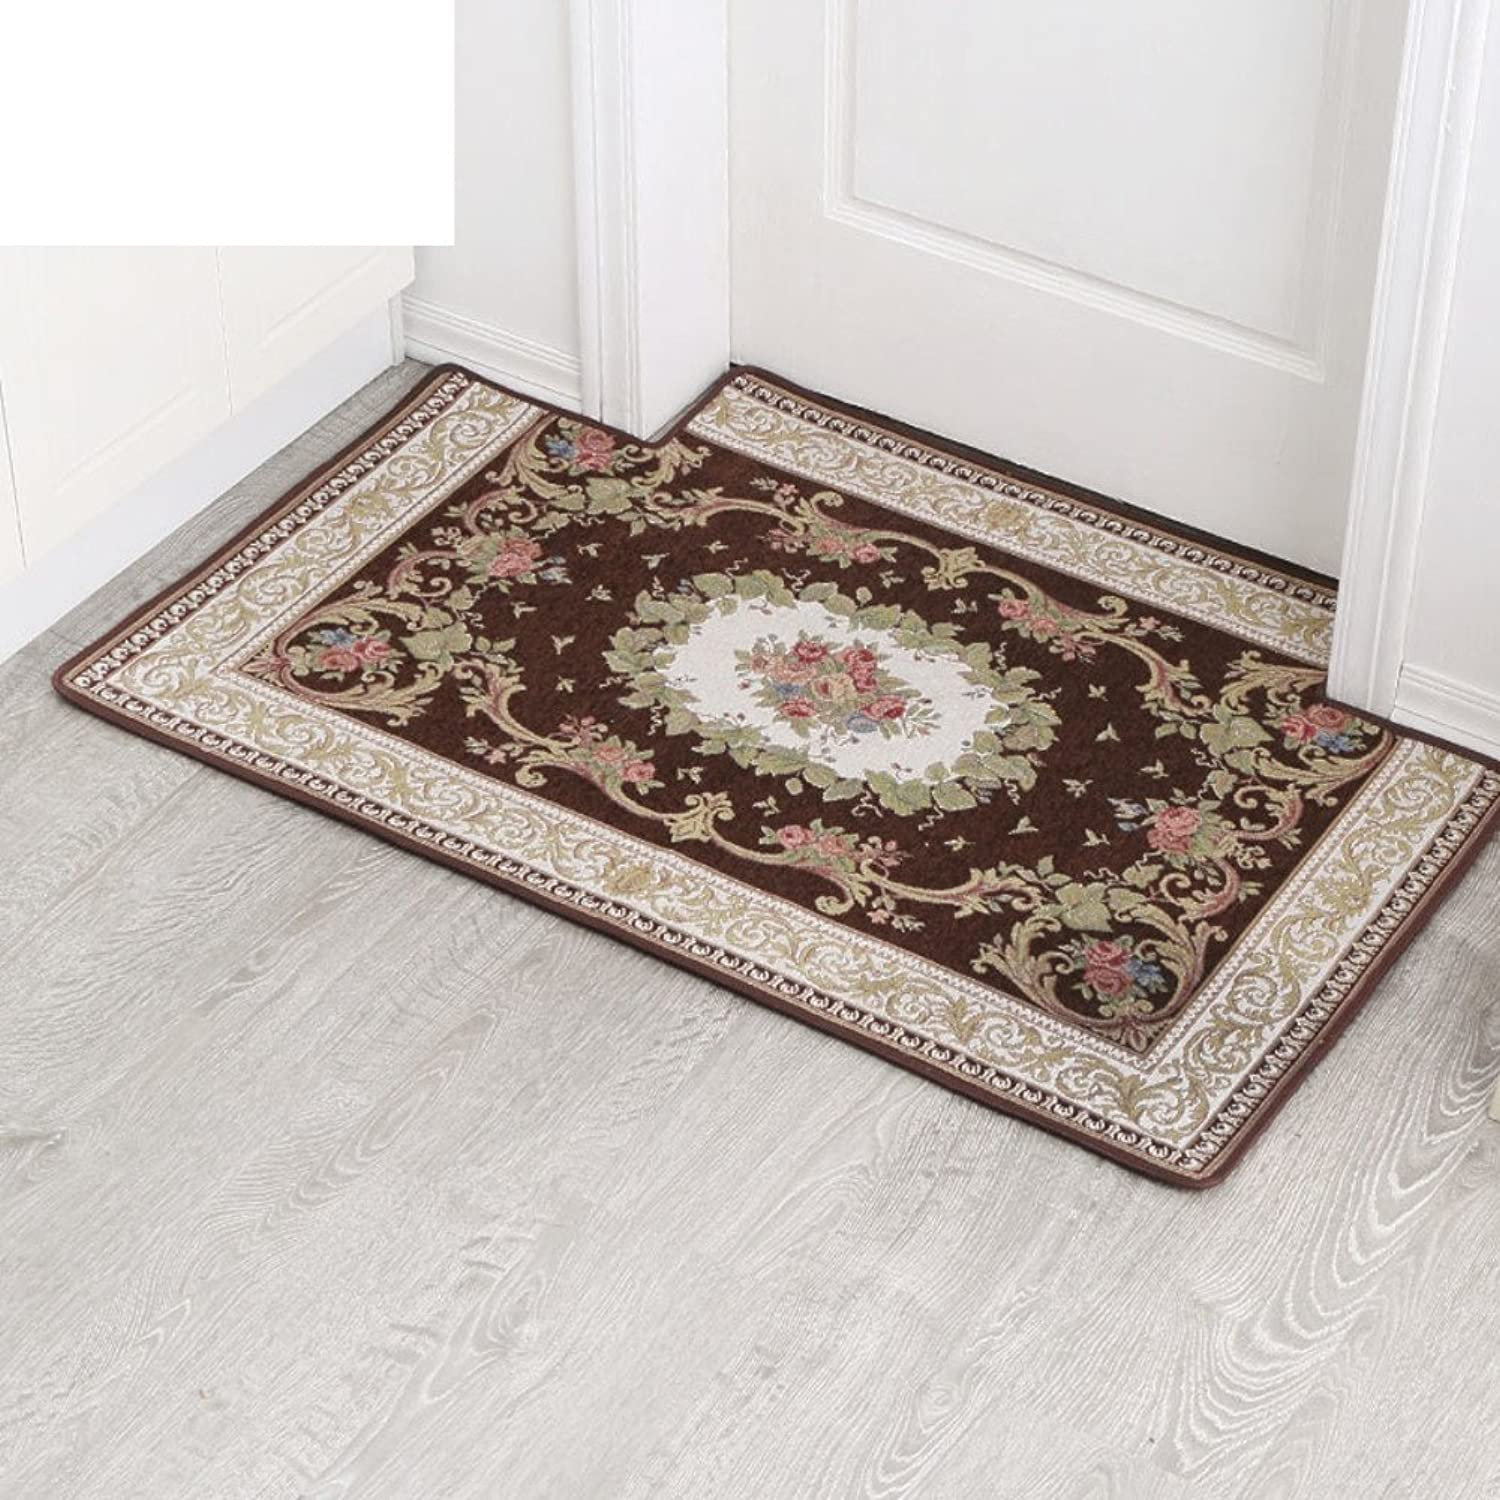 Lobby Floor Mats Indoor Mat Doormat Door Mats The Bedroom Entrance Door Mats-R 120x180cm(47x71inch)